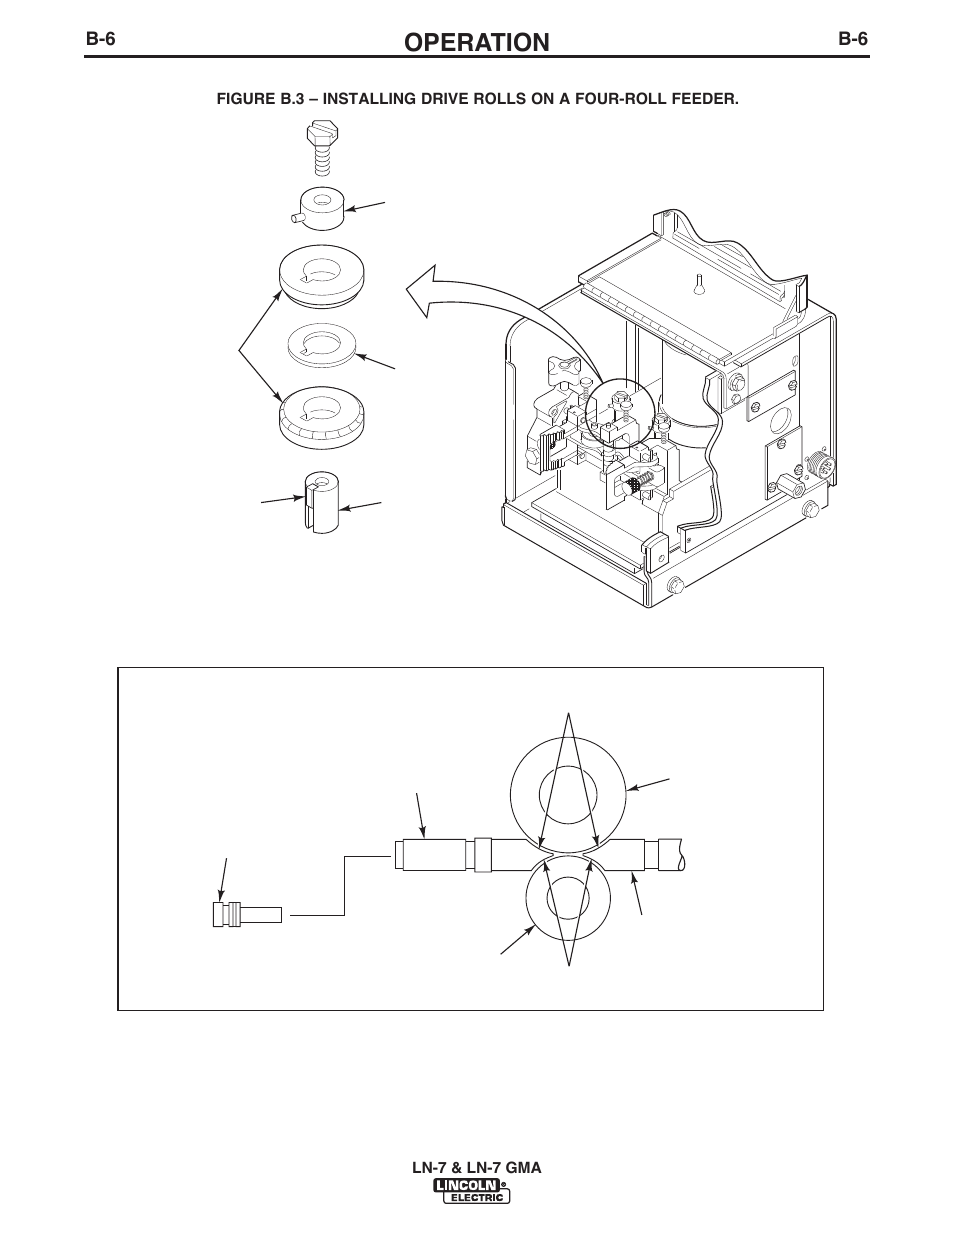 hight resolution of operation lincoln electric im351 ln 7 gma wire feeder user manual page 36 62